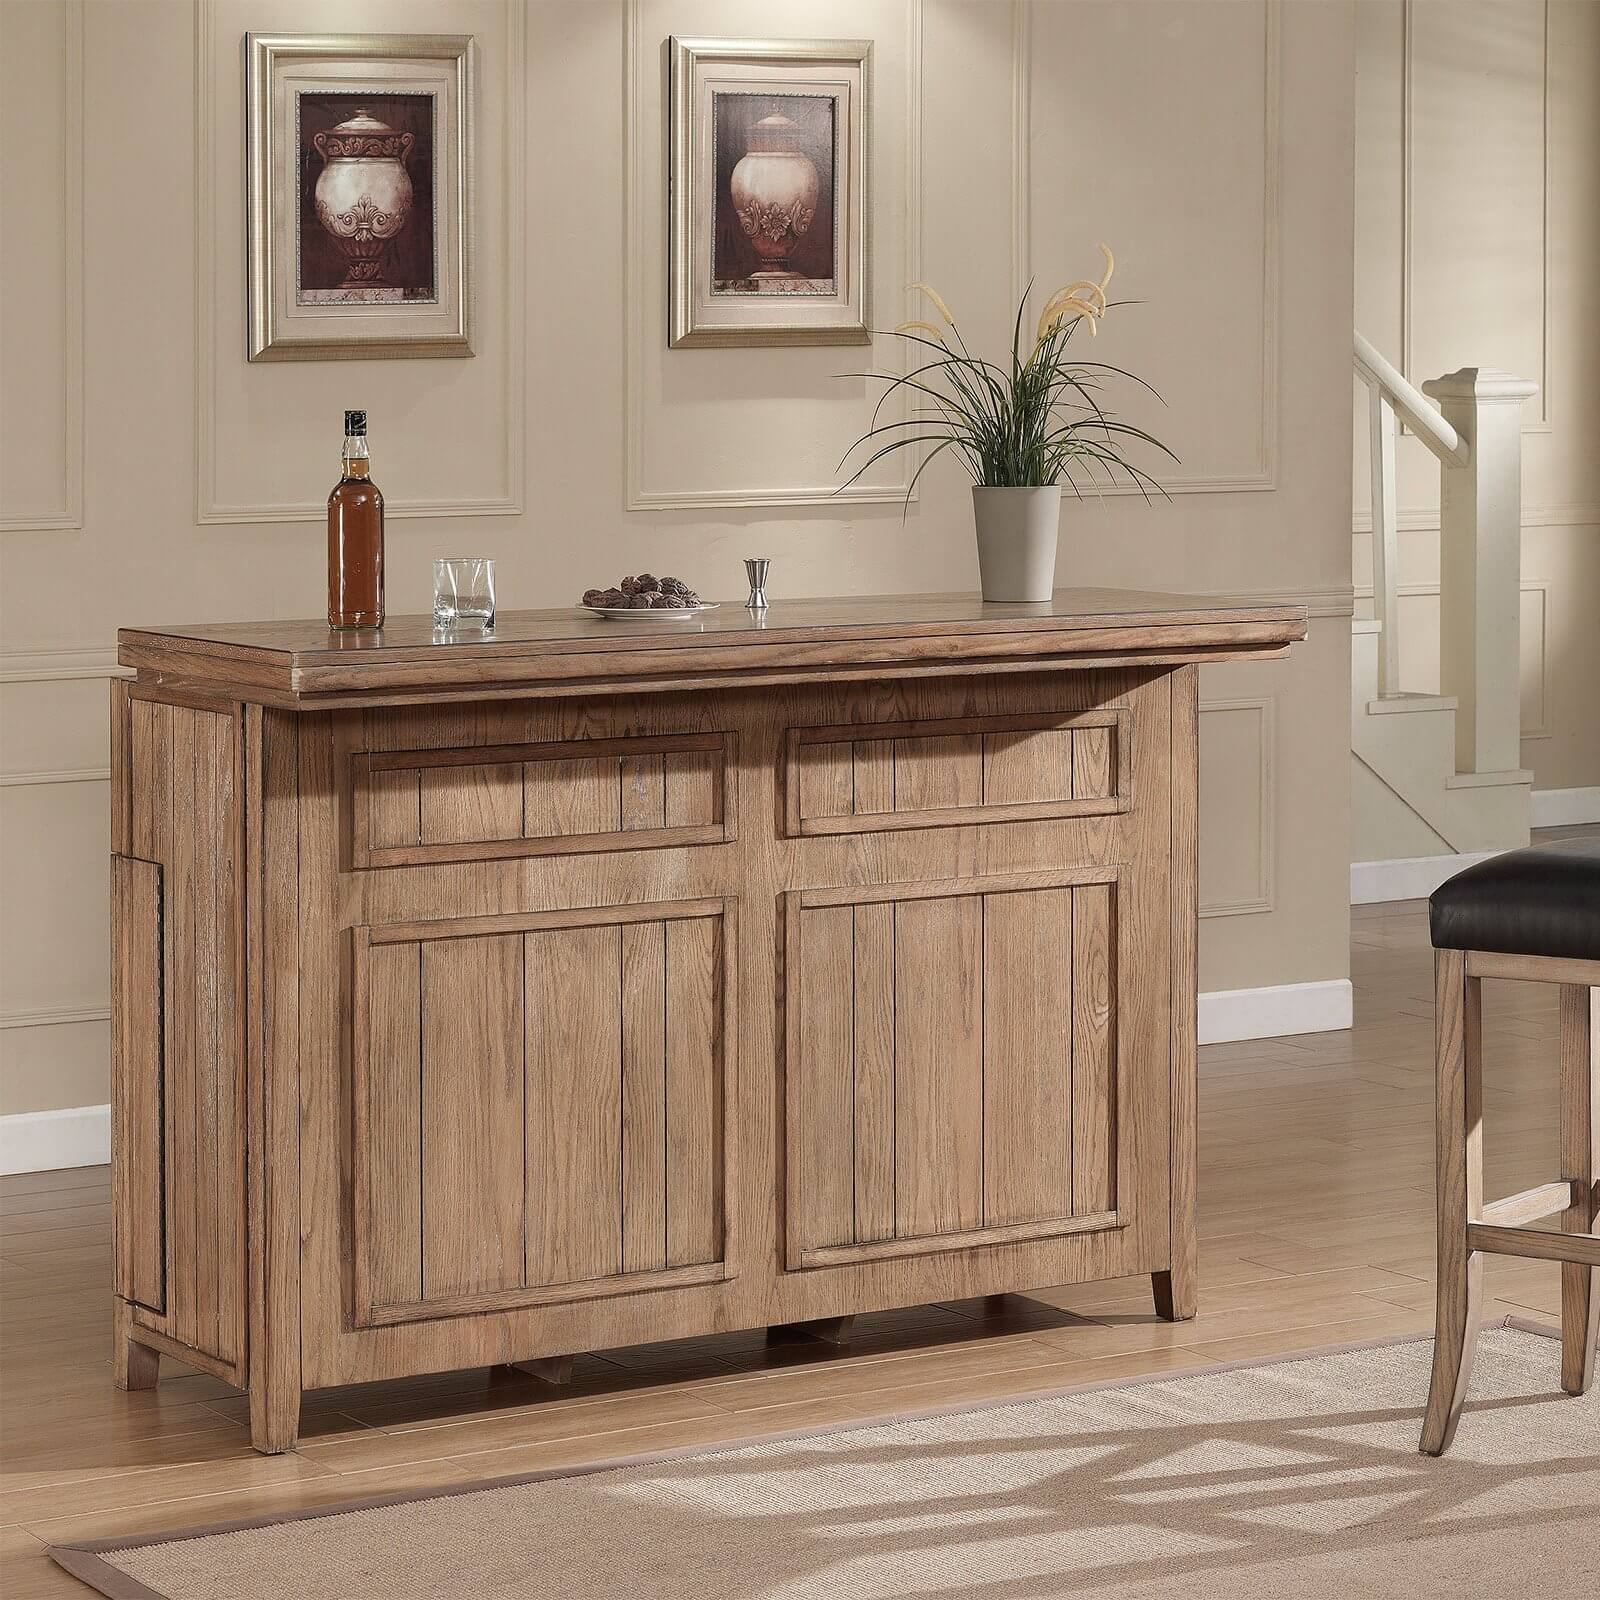 R As You Can See The Amount Of Storage In This Rustic Home Bar Cabinet Unit